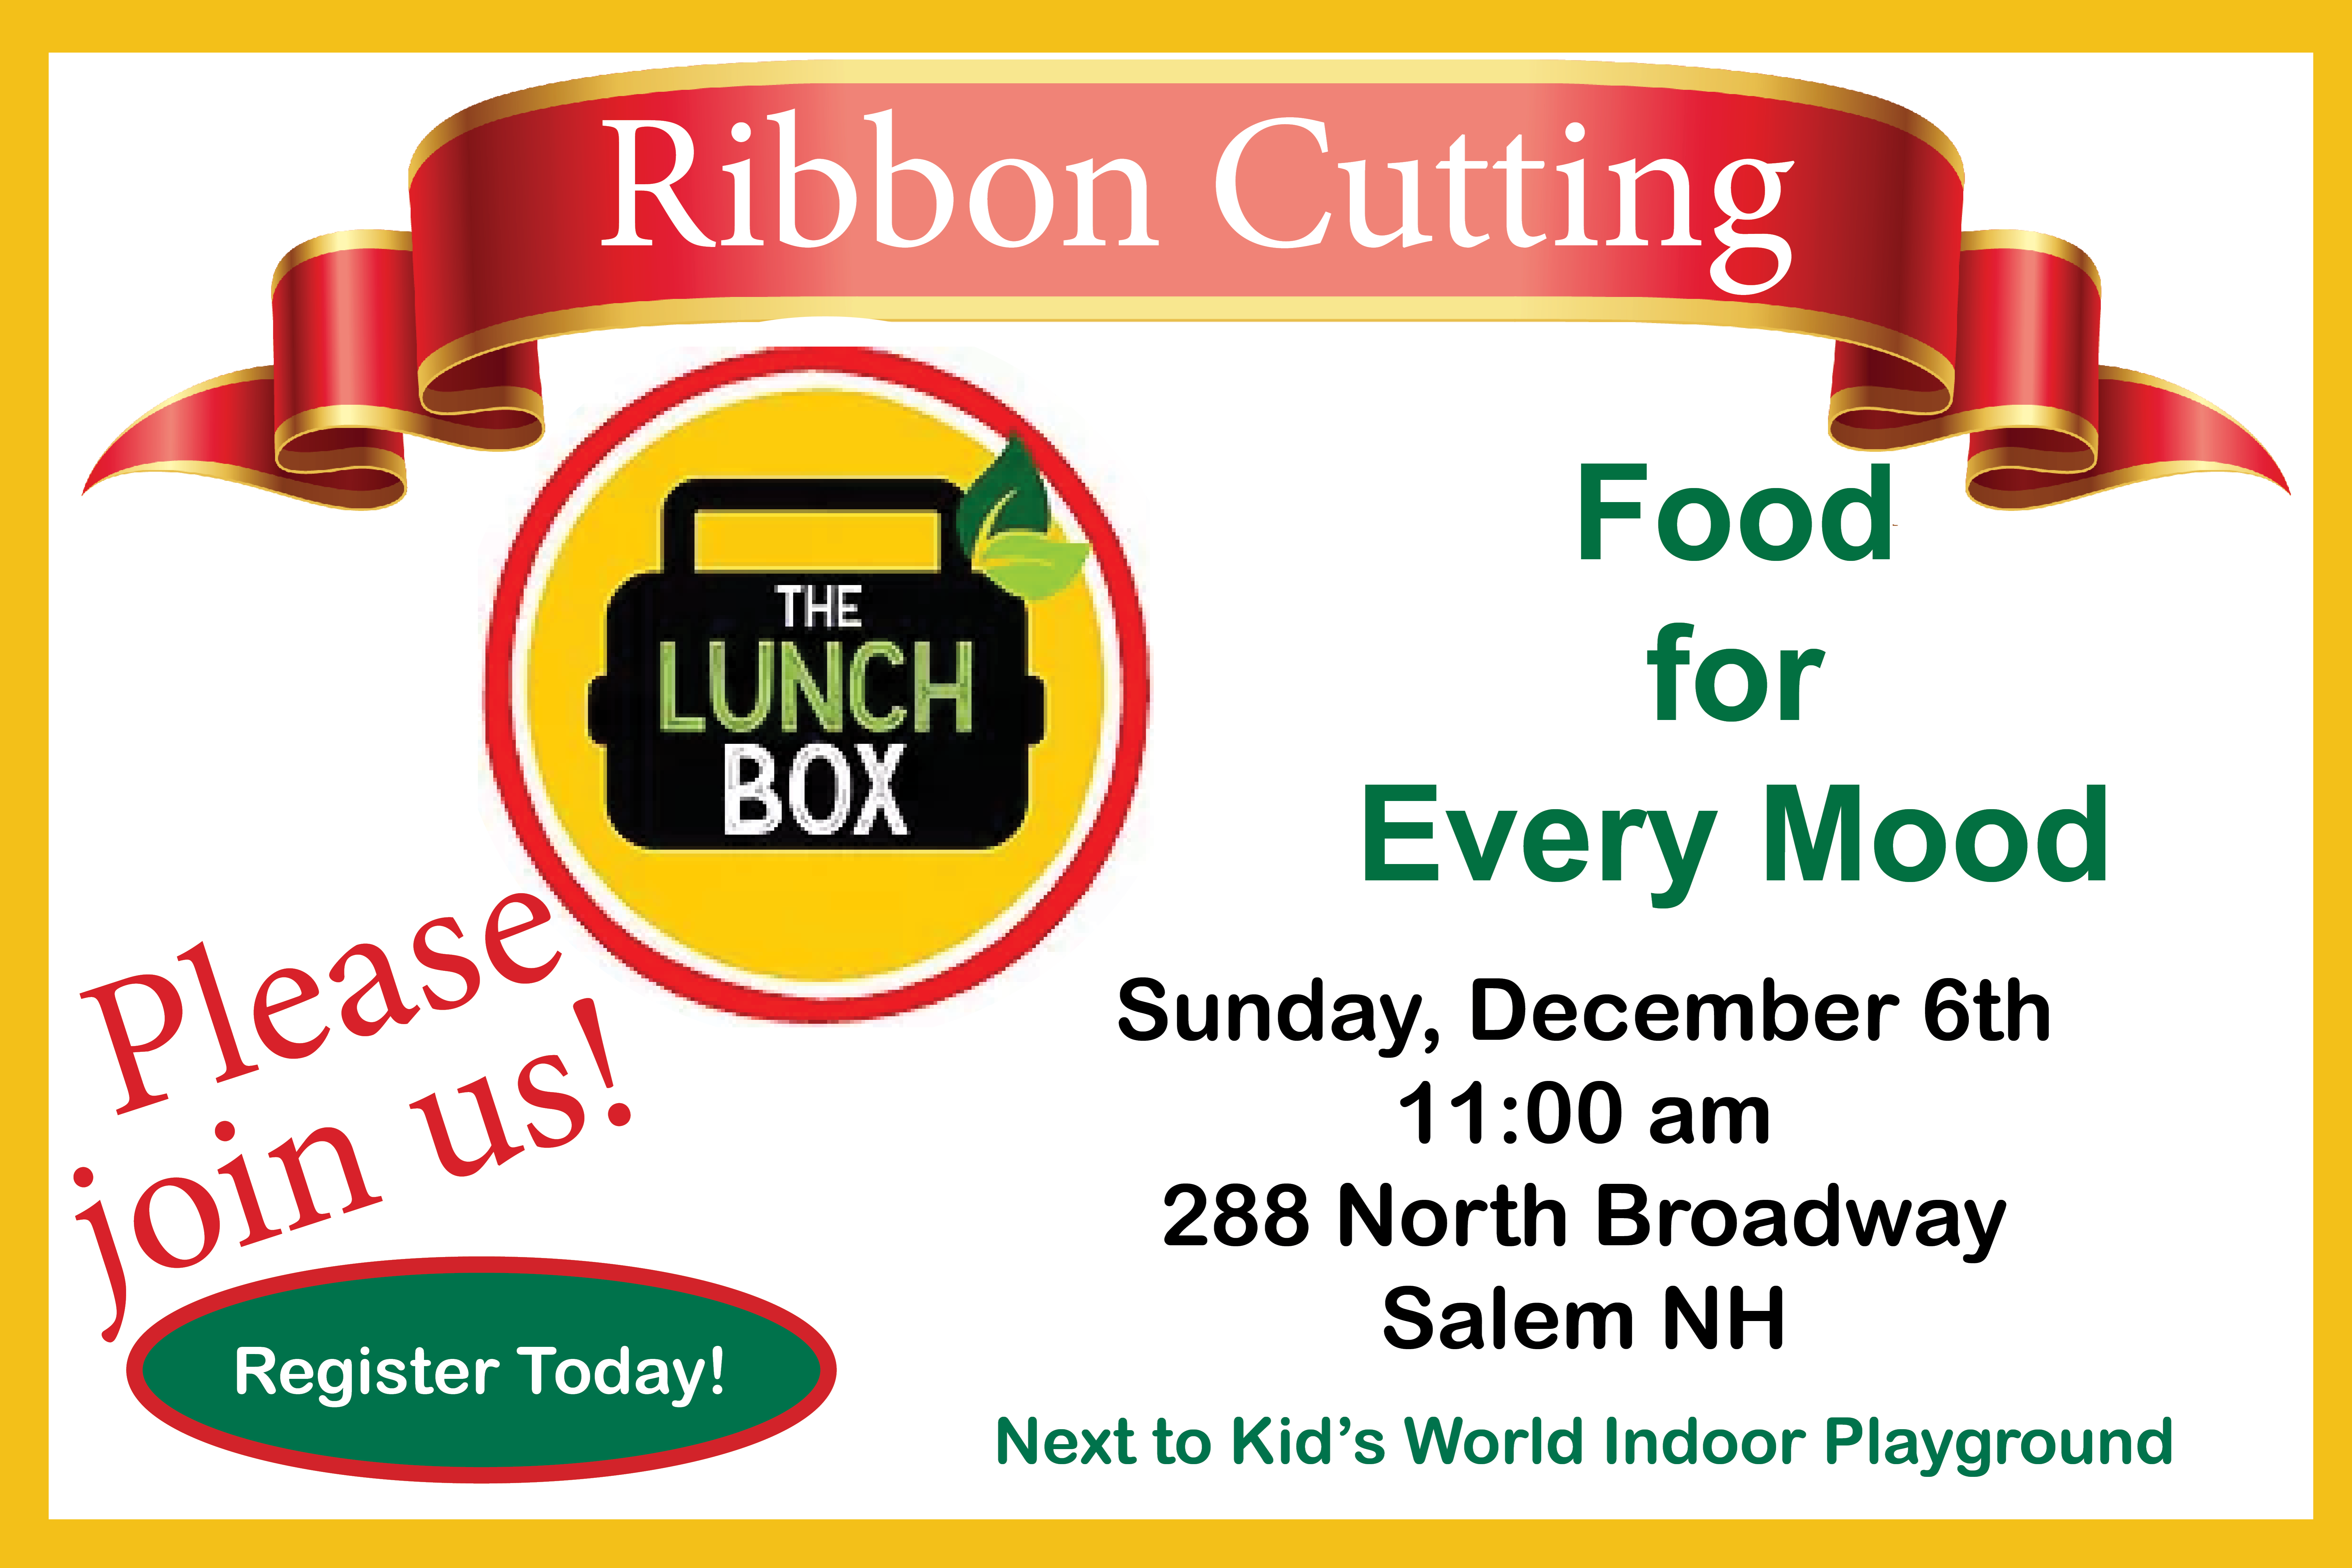 Ribbon-Cutting-Slider-The-Lunch-Box-w7199.png